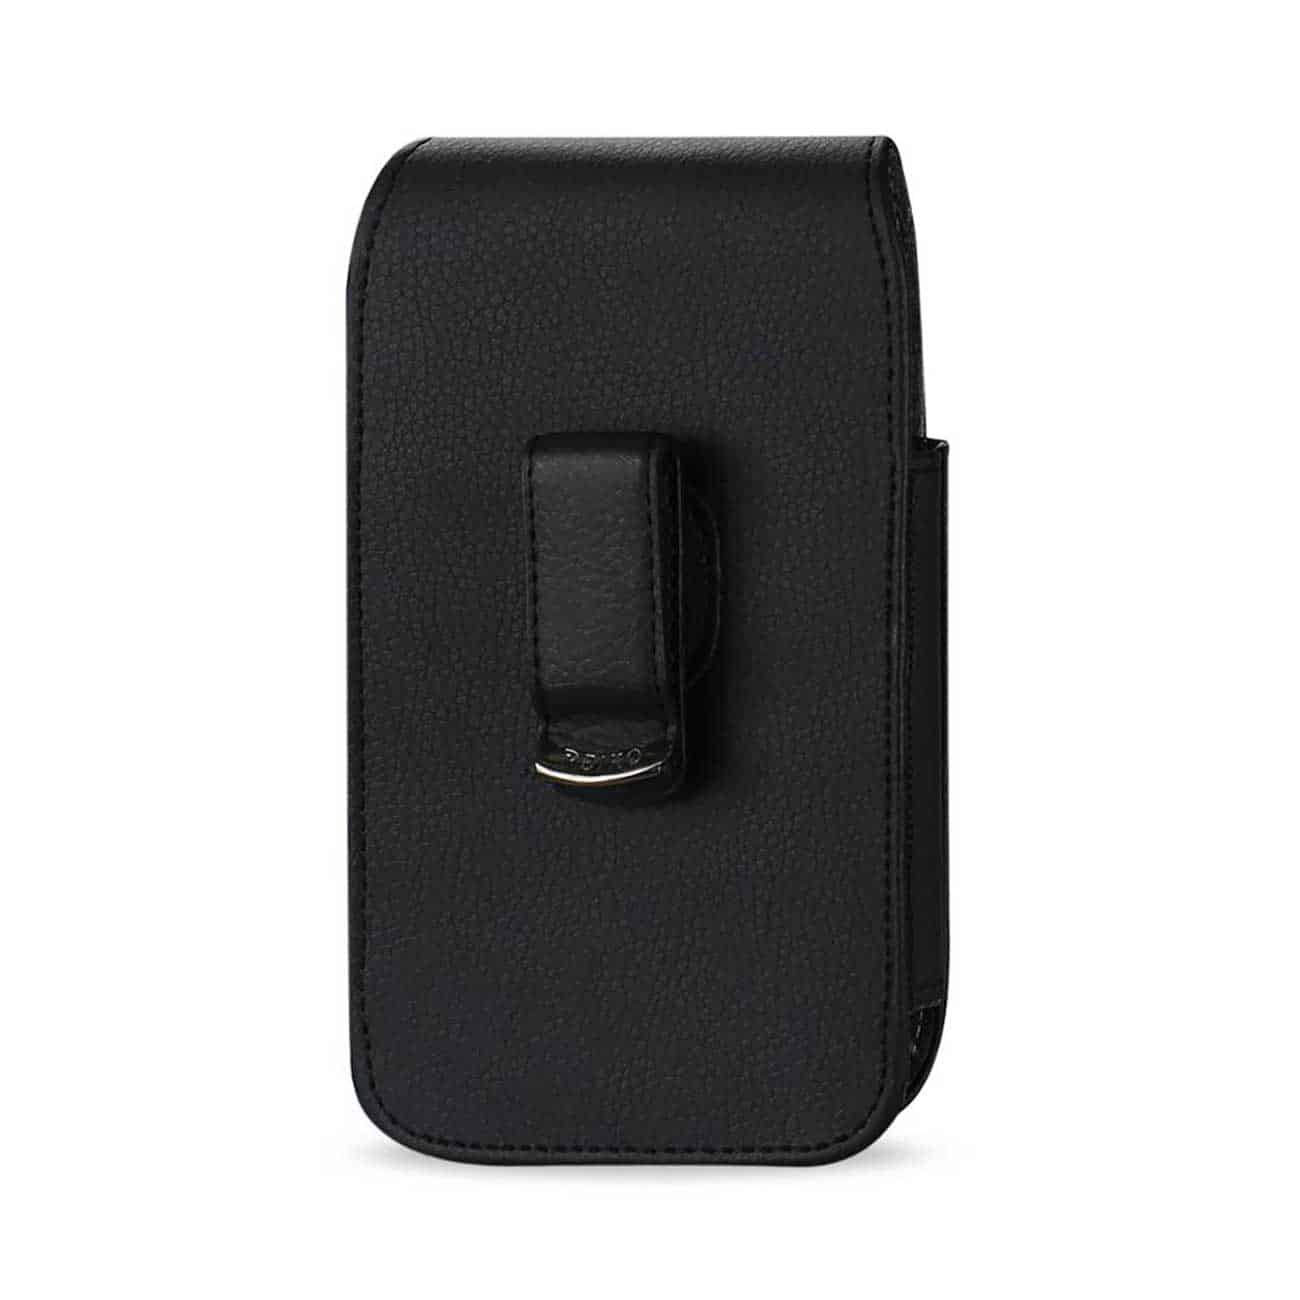 Leather Vertical Pouch With Embossed  Logo And Simple Design In Black (5.8X3.2X0.7 Inches)